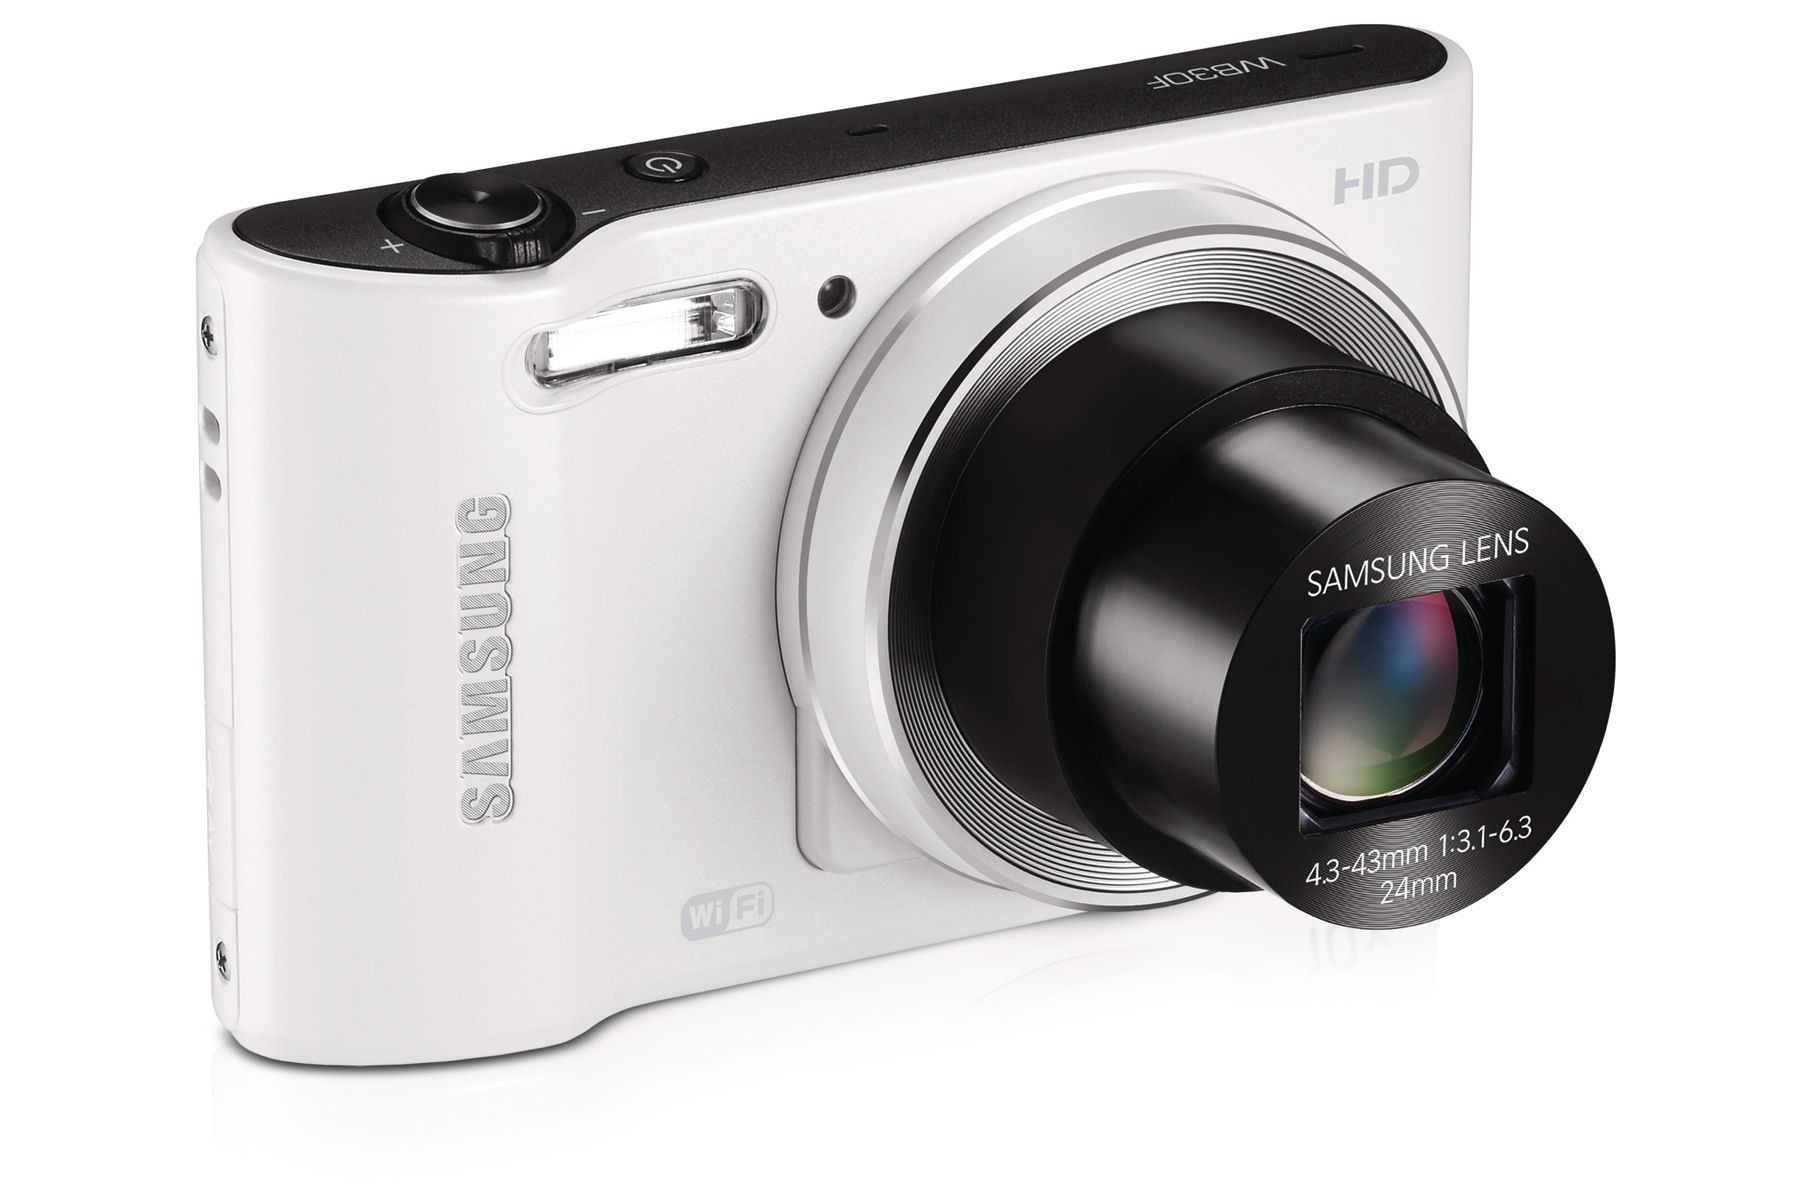 Samsung WB30F Digital Camera